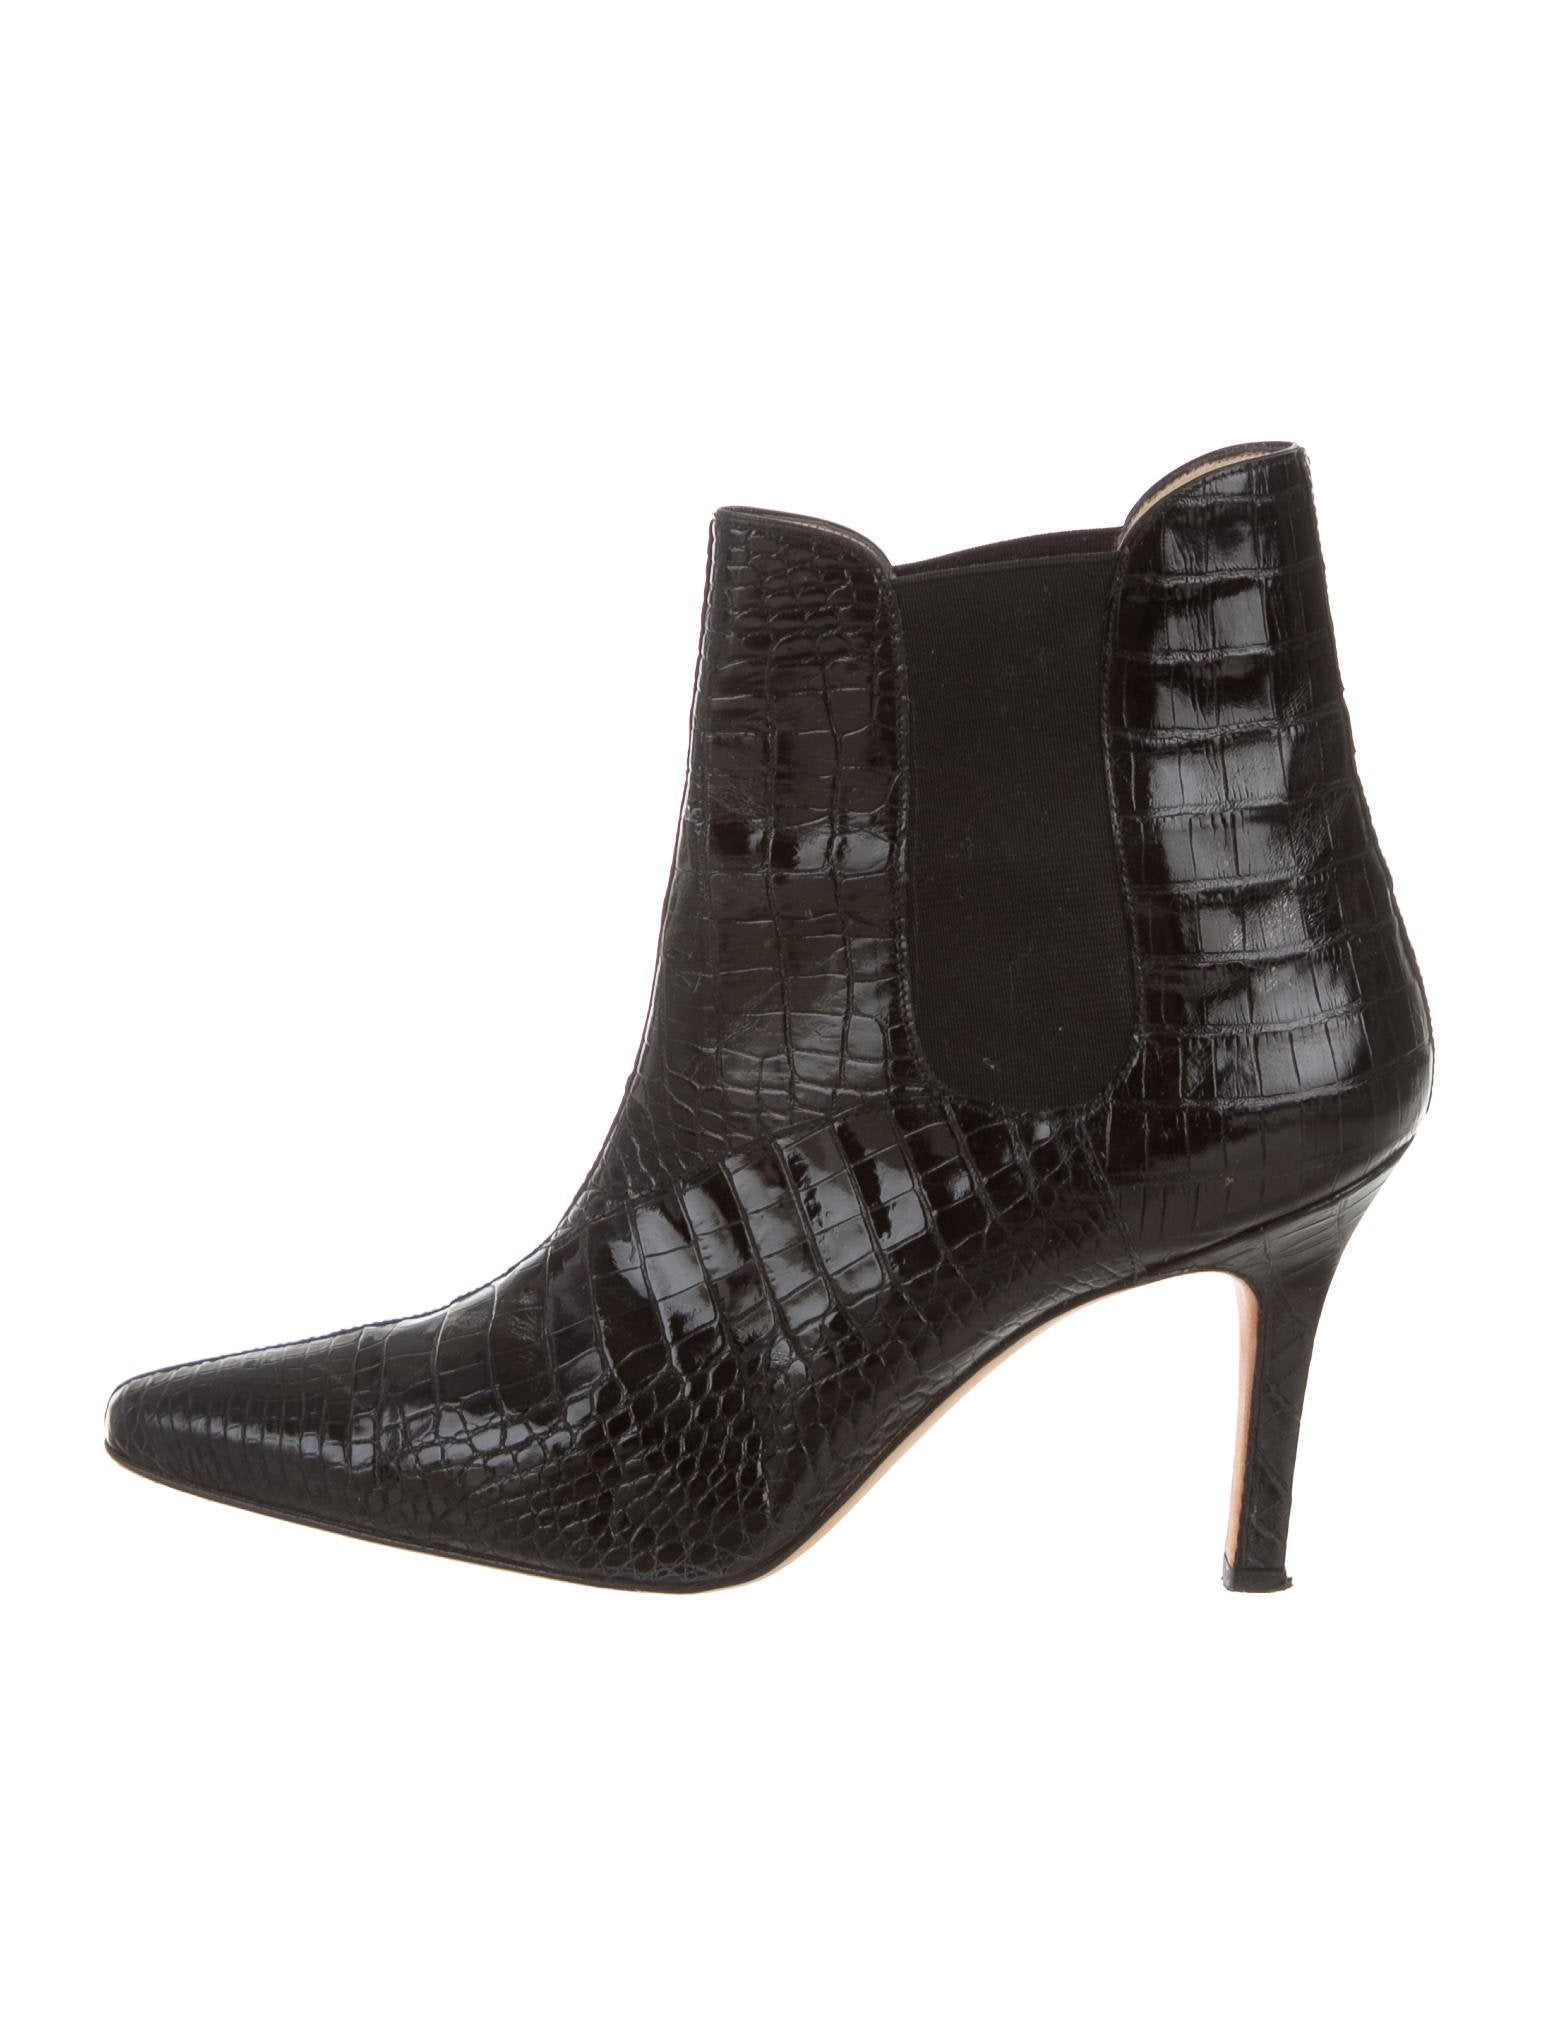 Manolo Blahnik Alligator Pointed-Toe Ankle Boots discount big discount finishline cheap Inexpensive view W18WQY